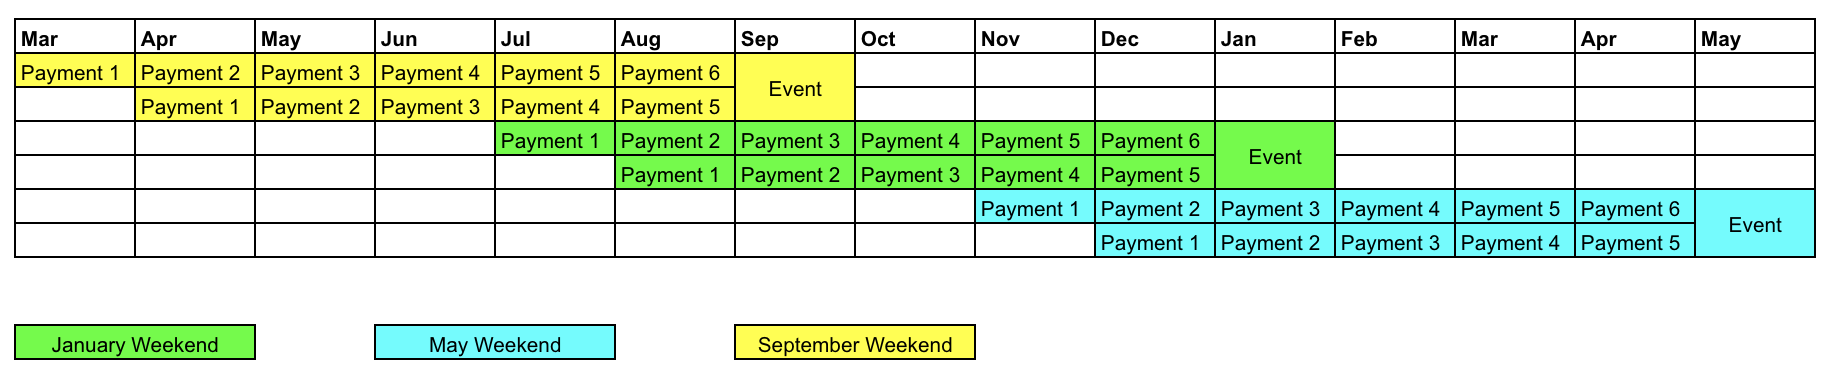 payplan dates